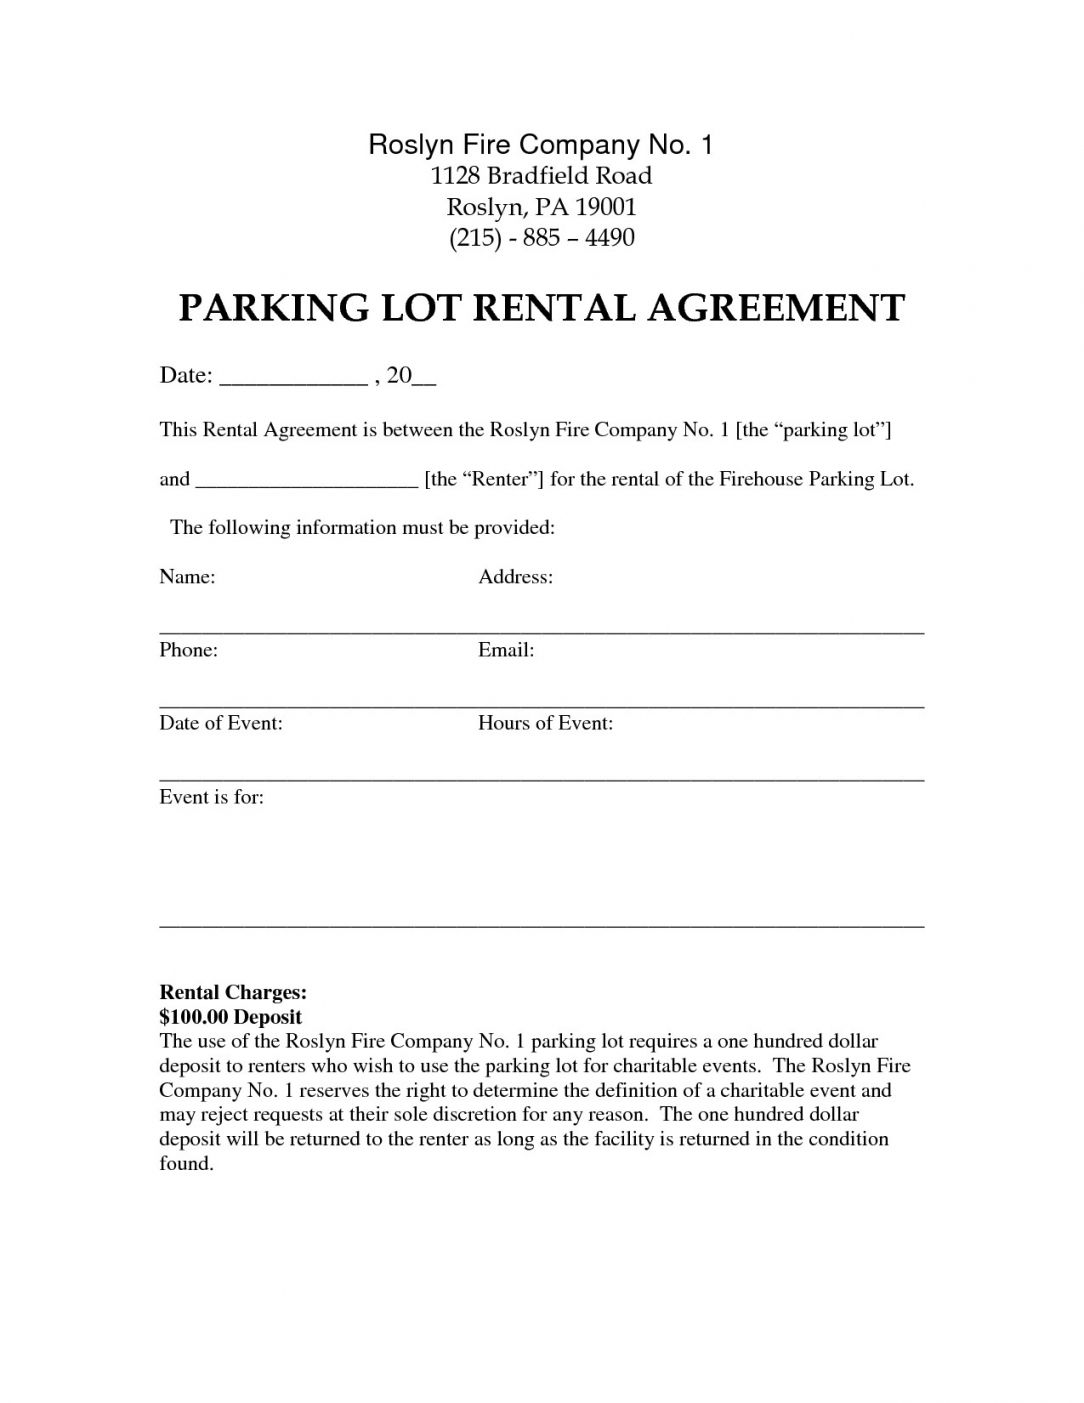 Parking Space Rental Agreement Template In 2020 Templates Agreement